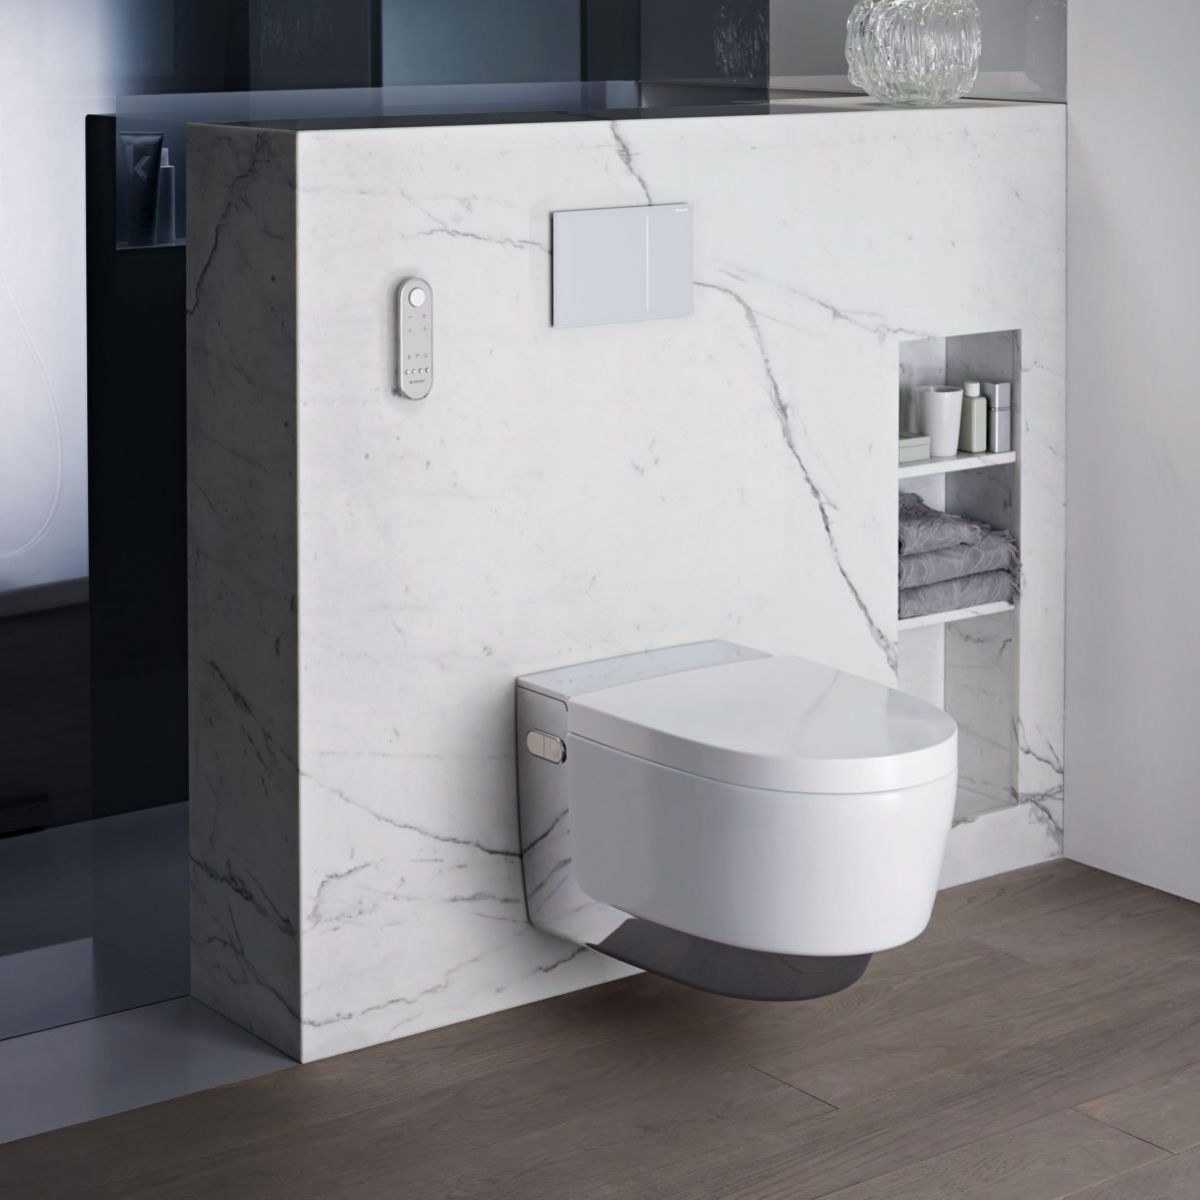 Geberit Aquaclean Mera Comfort Shower Toilet